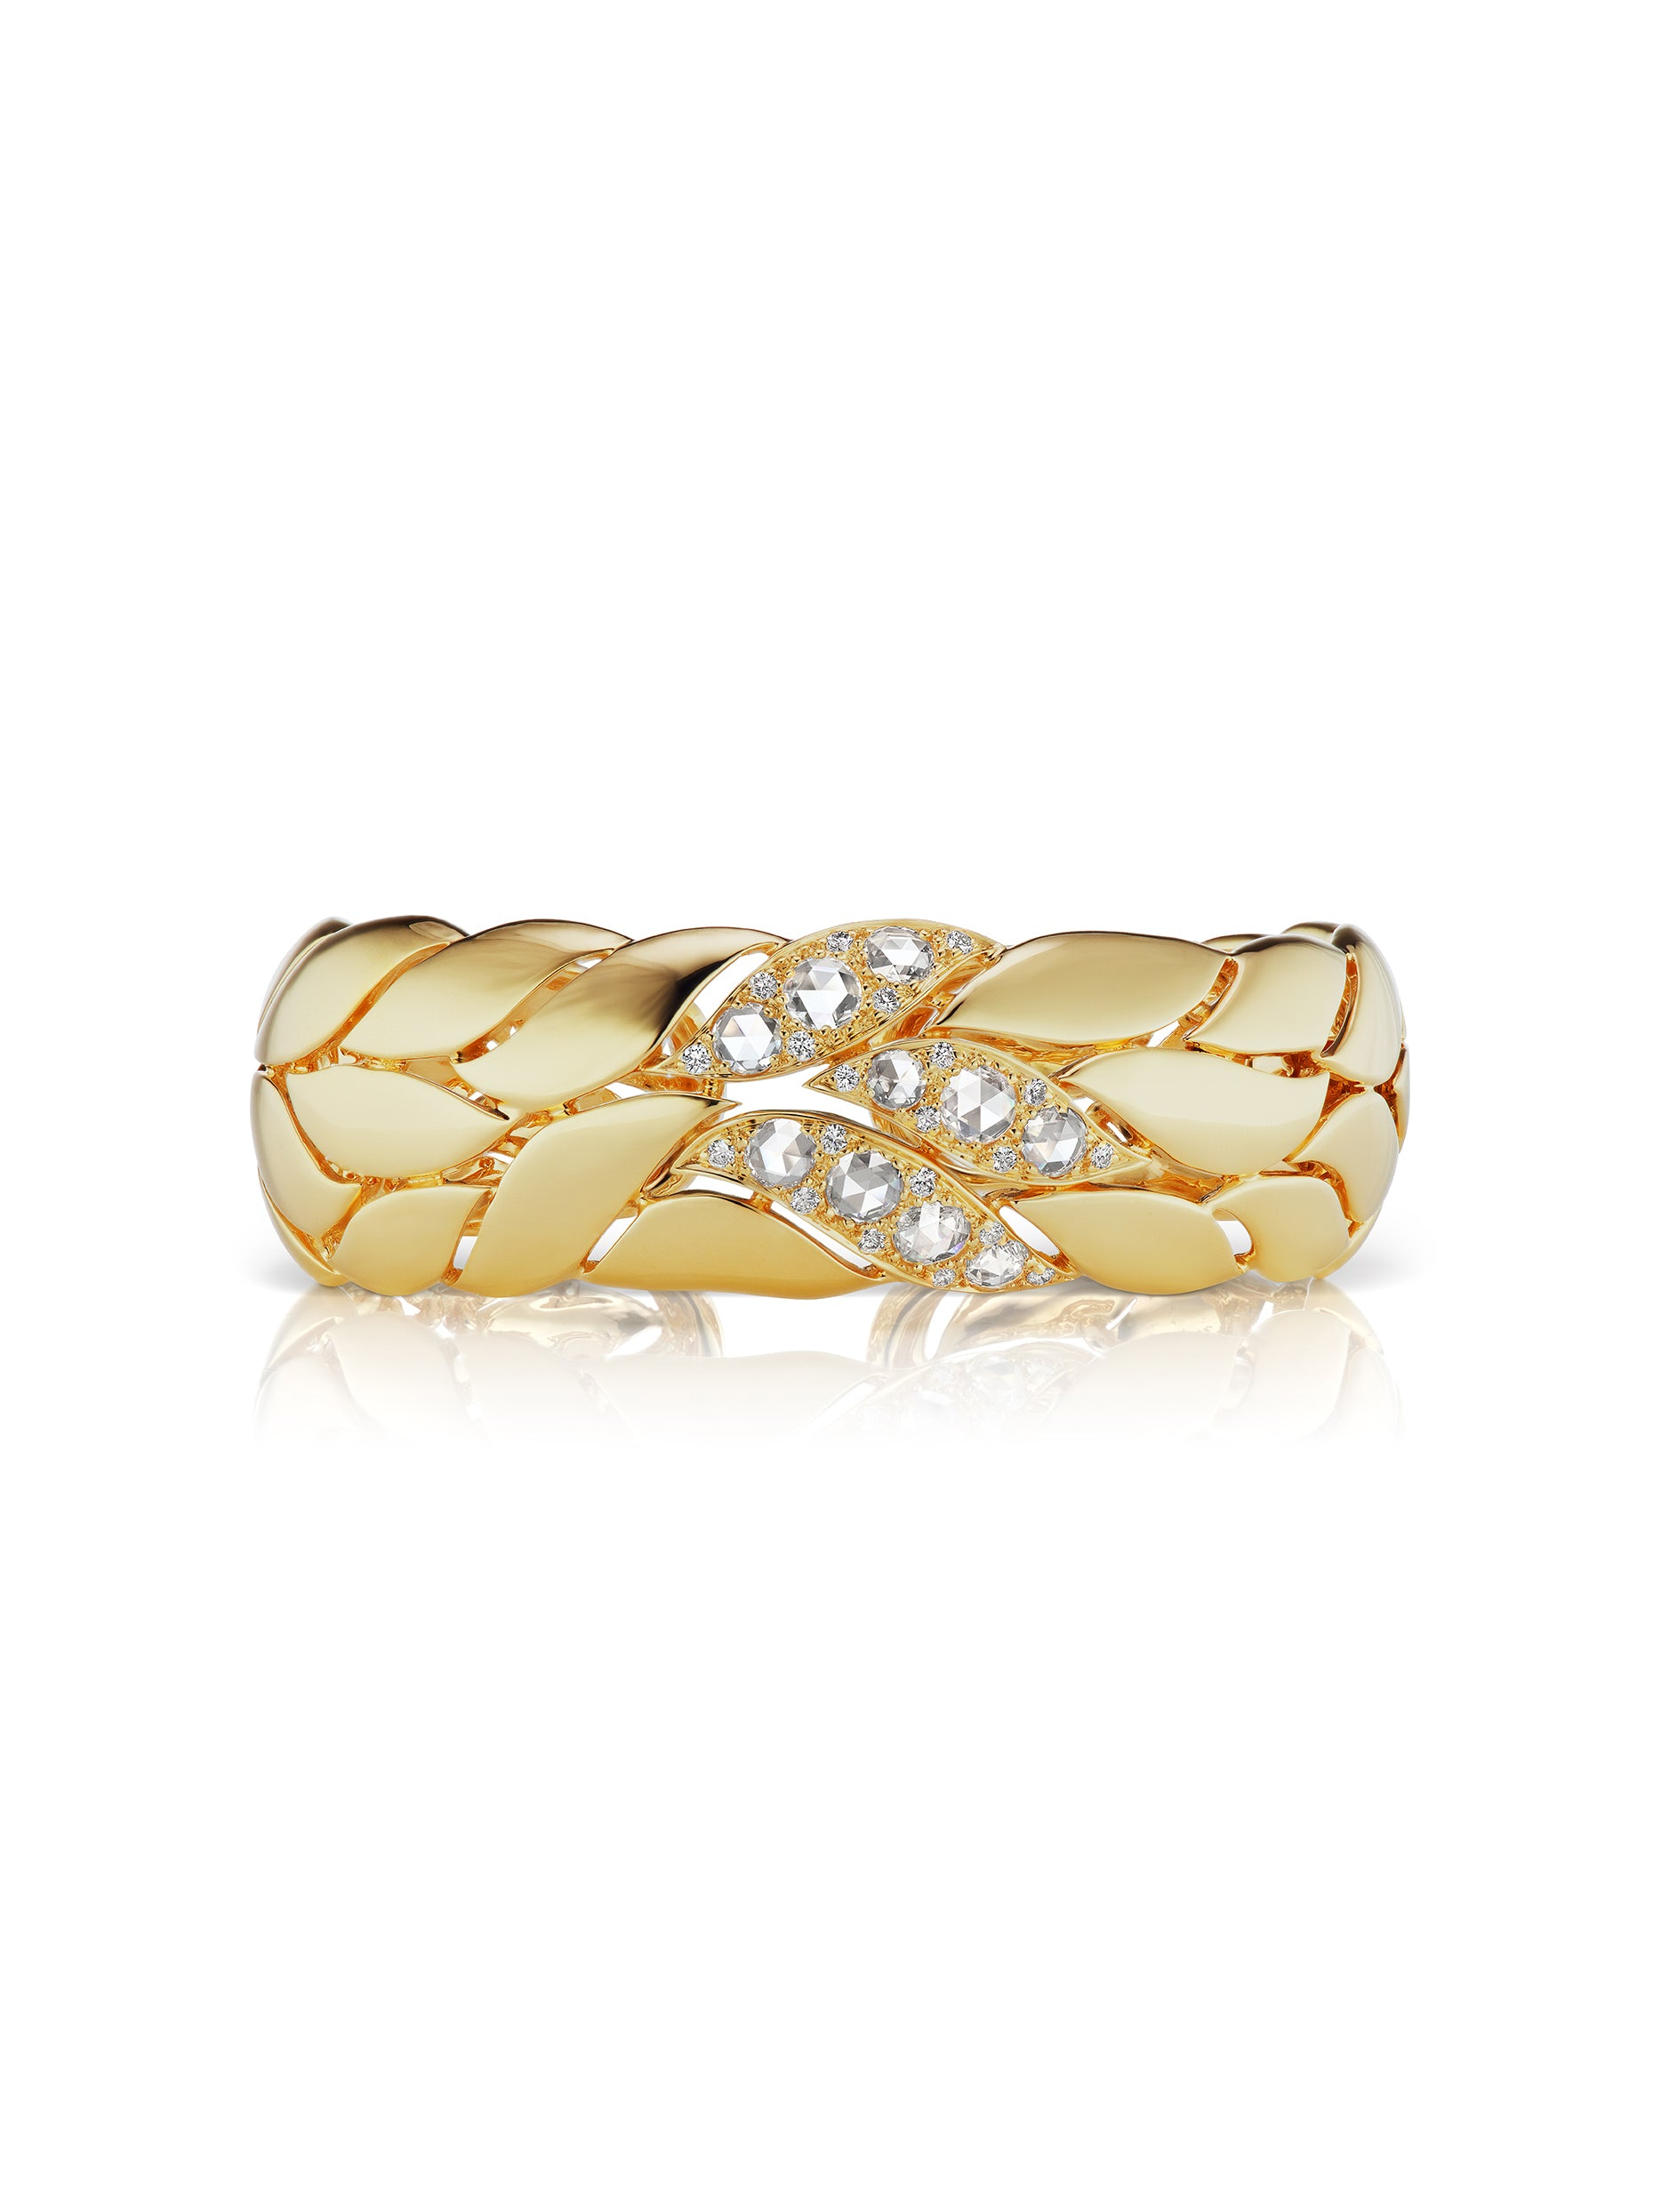 Petal Gold and Diamond Bangle